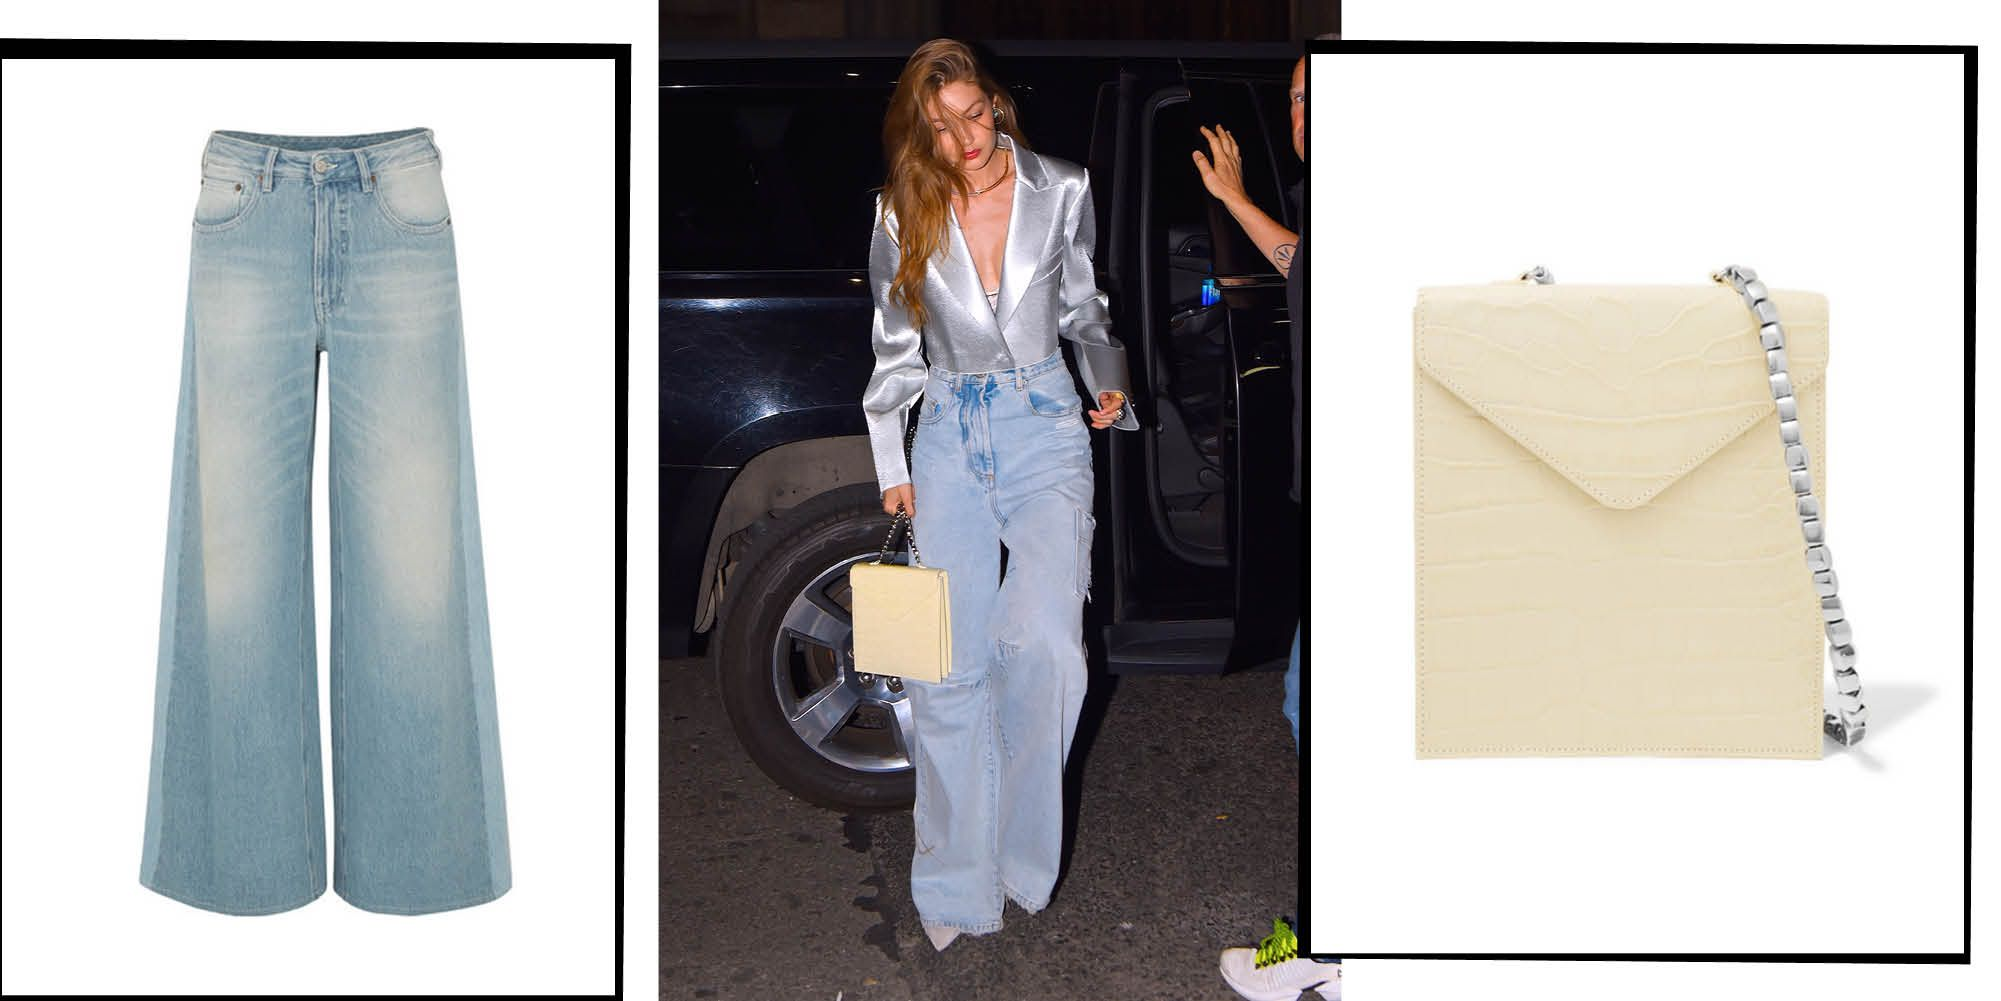 We're Recreating Gigi Hadid's Sexy-Chic Look ASAP For Date Night